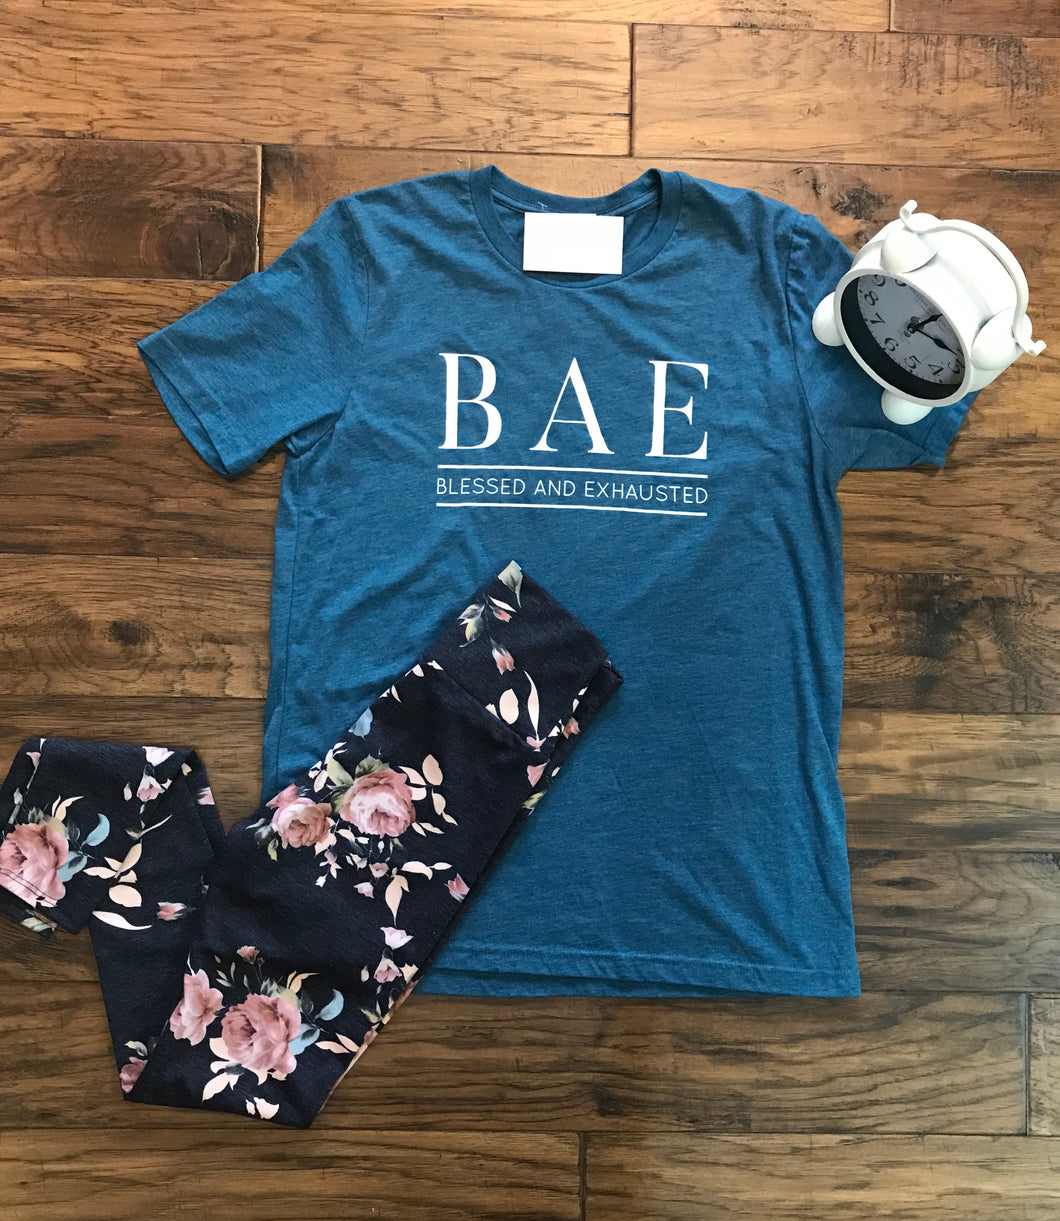 BAE - Blessed & Exhausted